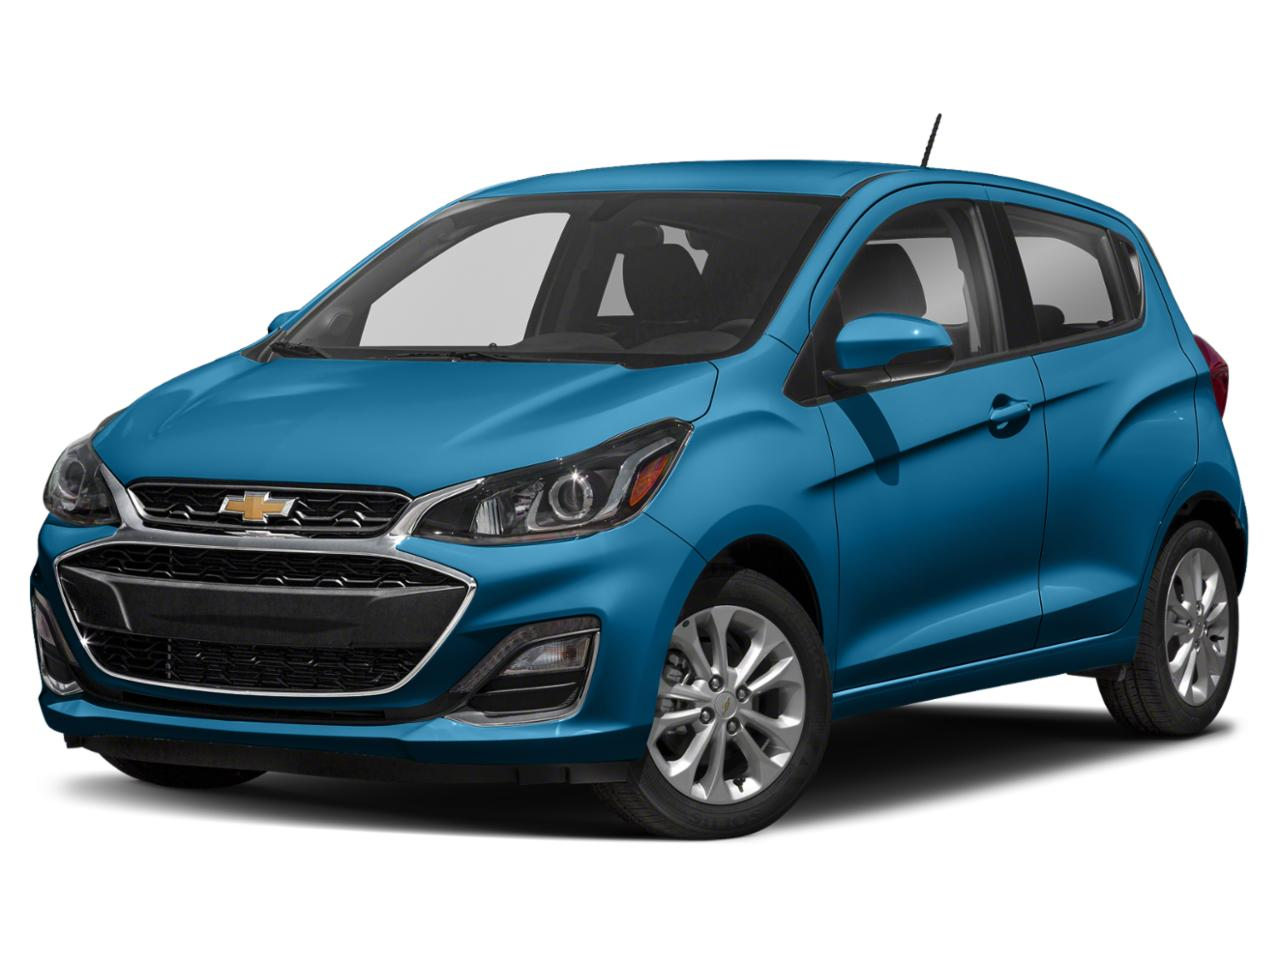 New 2021 Chevrolet Spark Ls In Mystic Blue For Sale In Dallas Texas Mc704575